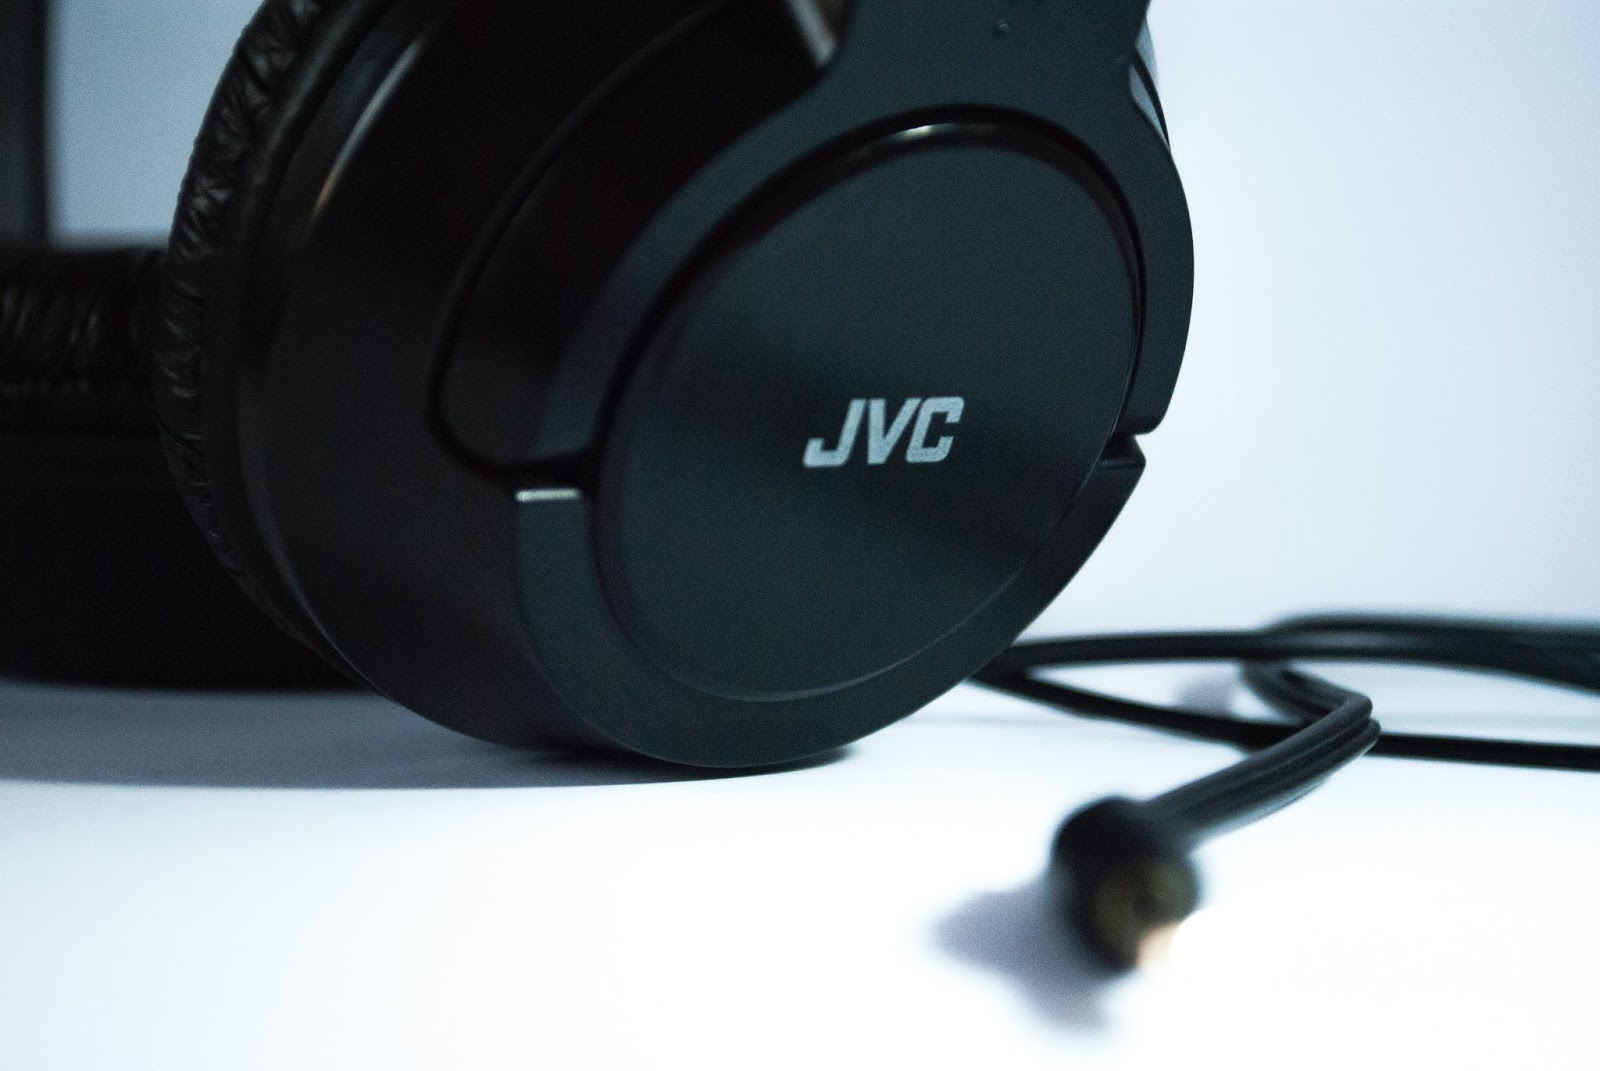 audio JVC service center